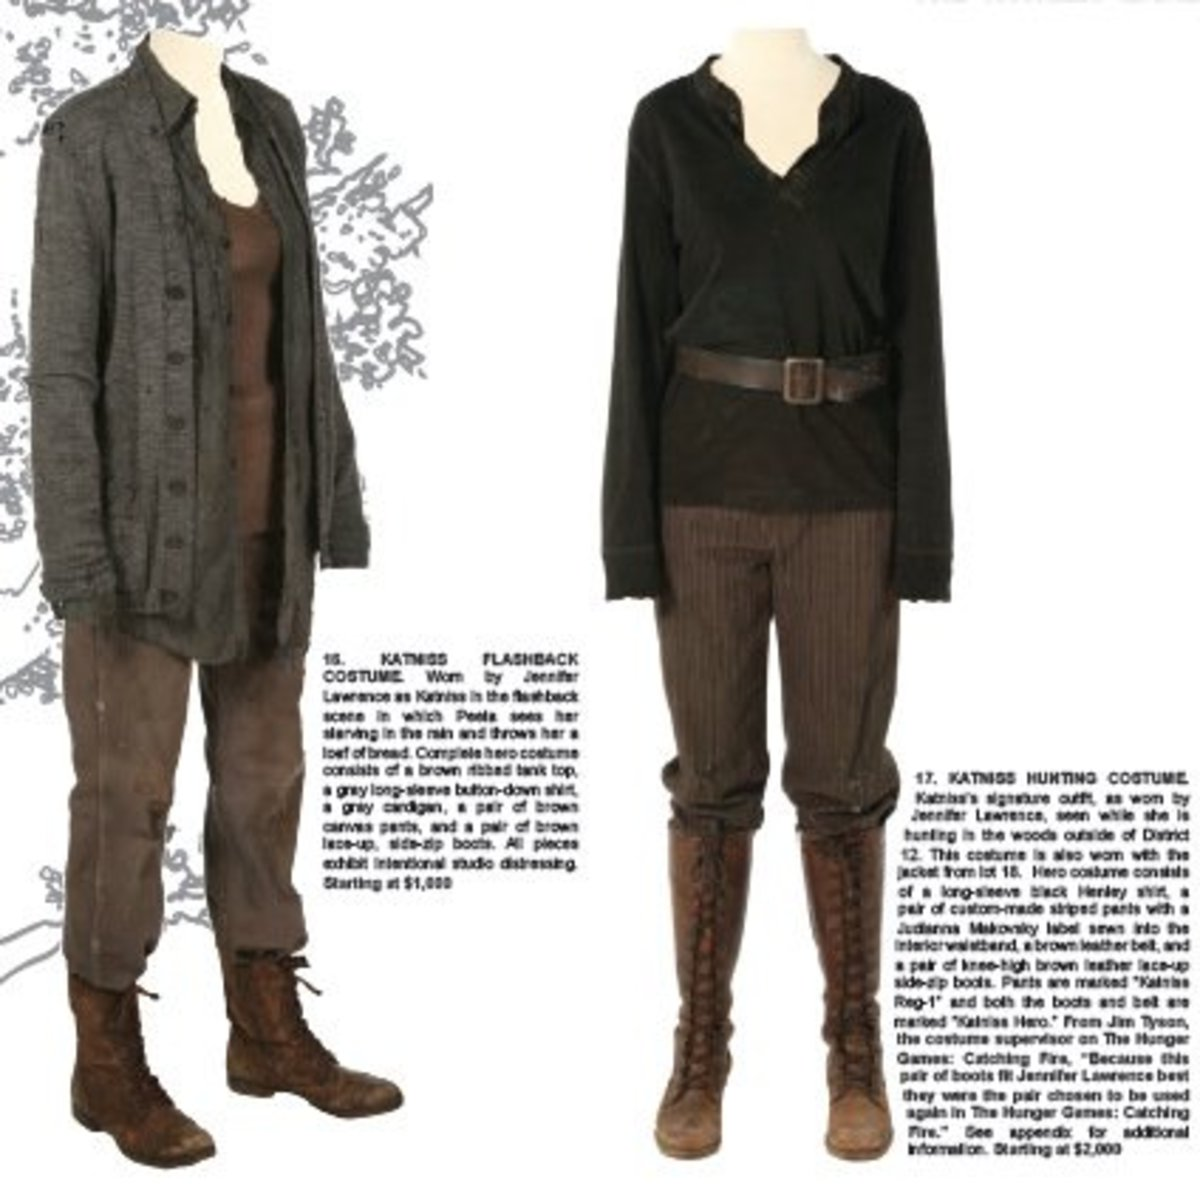 Katniss hunting katniss everdeen hunger games costume and makeup katniss everdeen hunger games costume and makeup photos of katniss everdeen s hunger games outfits solutioingenieria Image collections